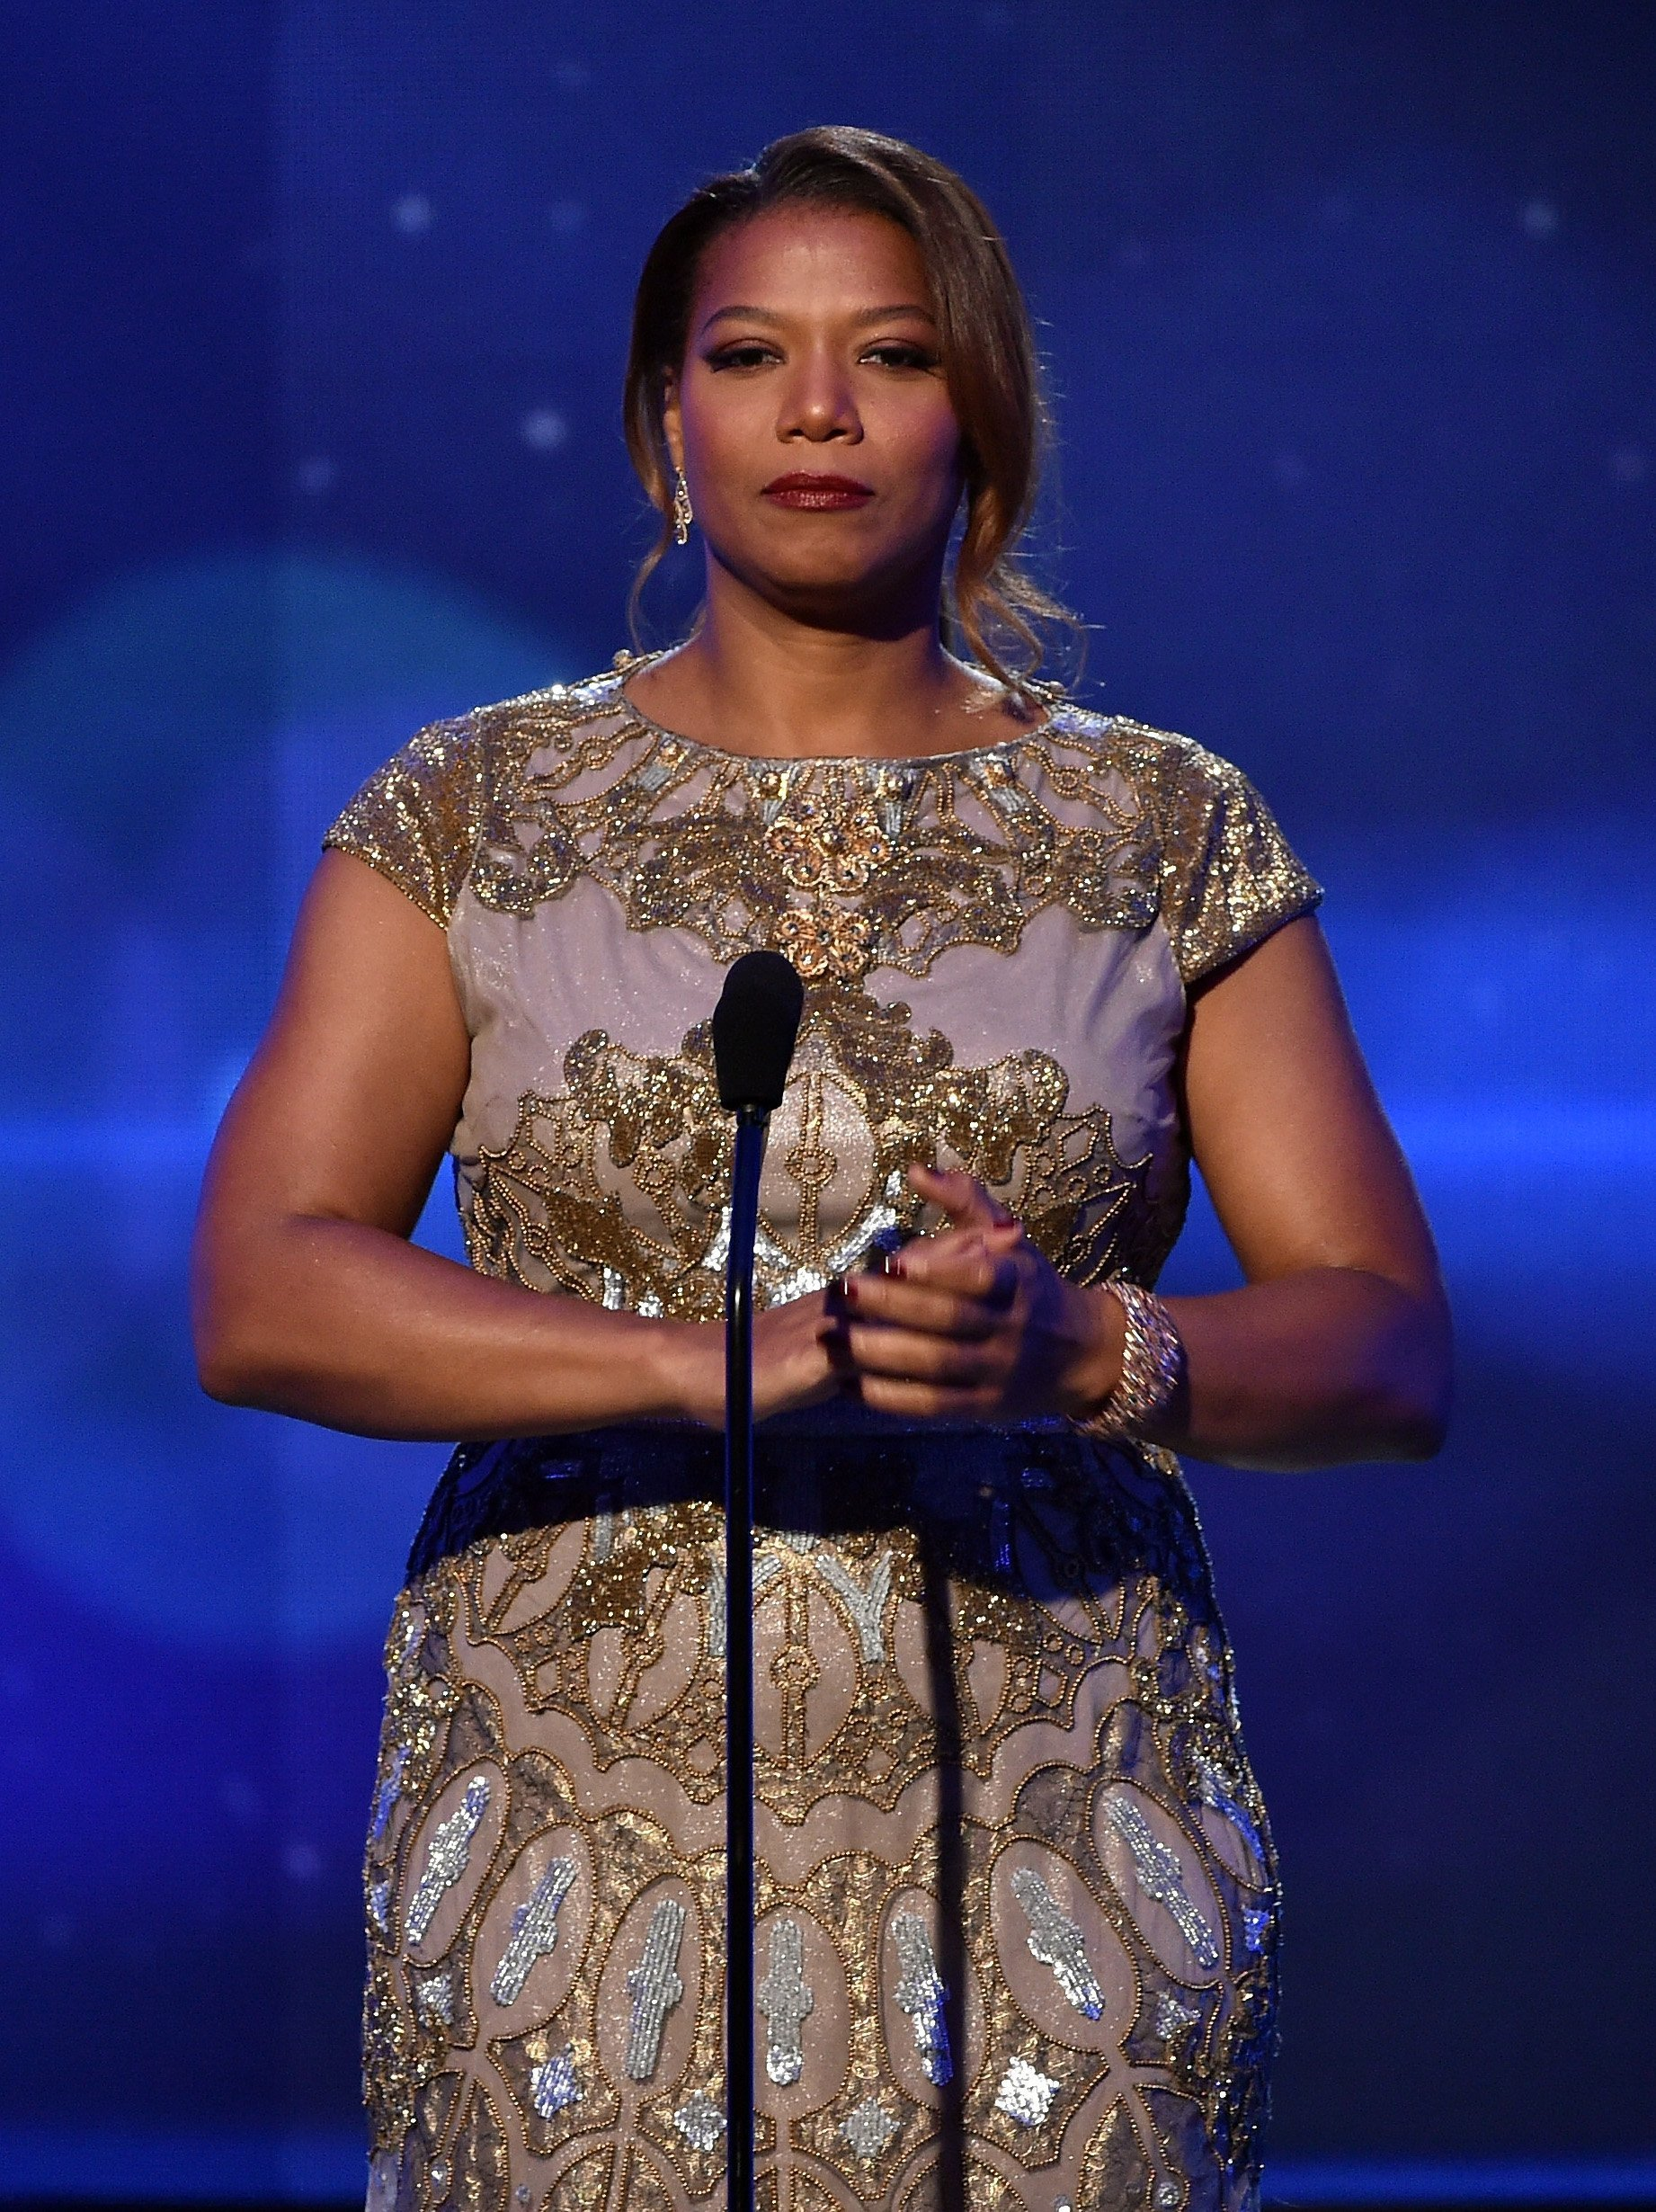 Queen Latifah at the 18th Annual Hollywood Film Awards on Nov. 14, 2014 in California | Photo: Getty Images